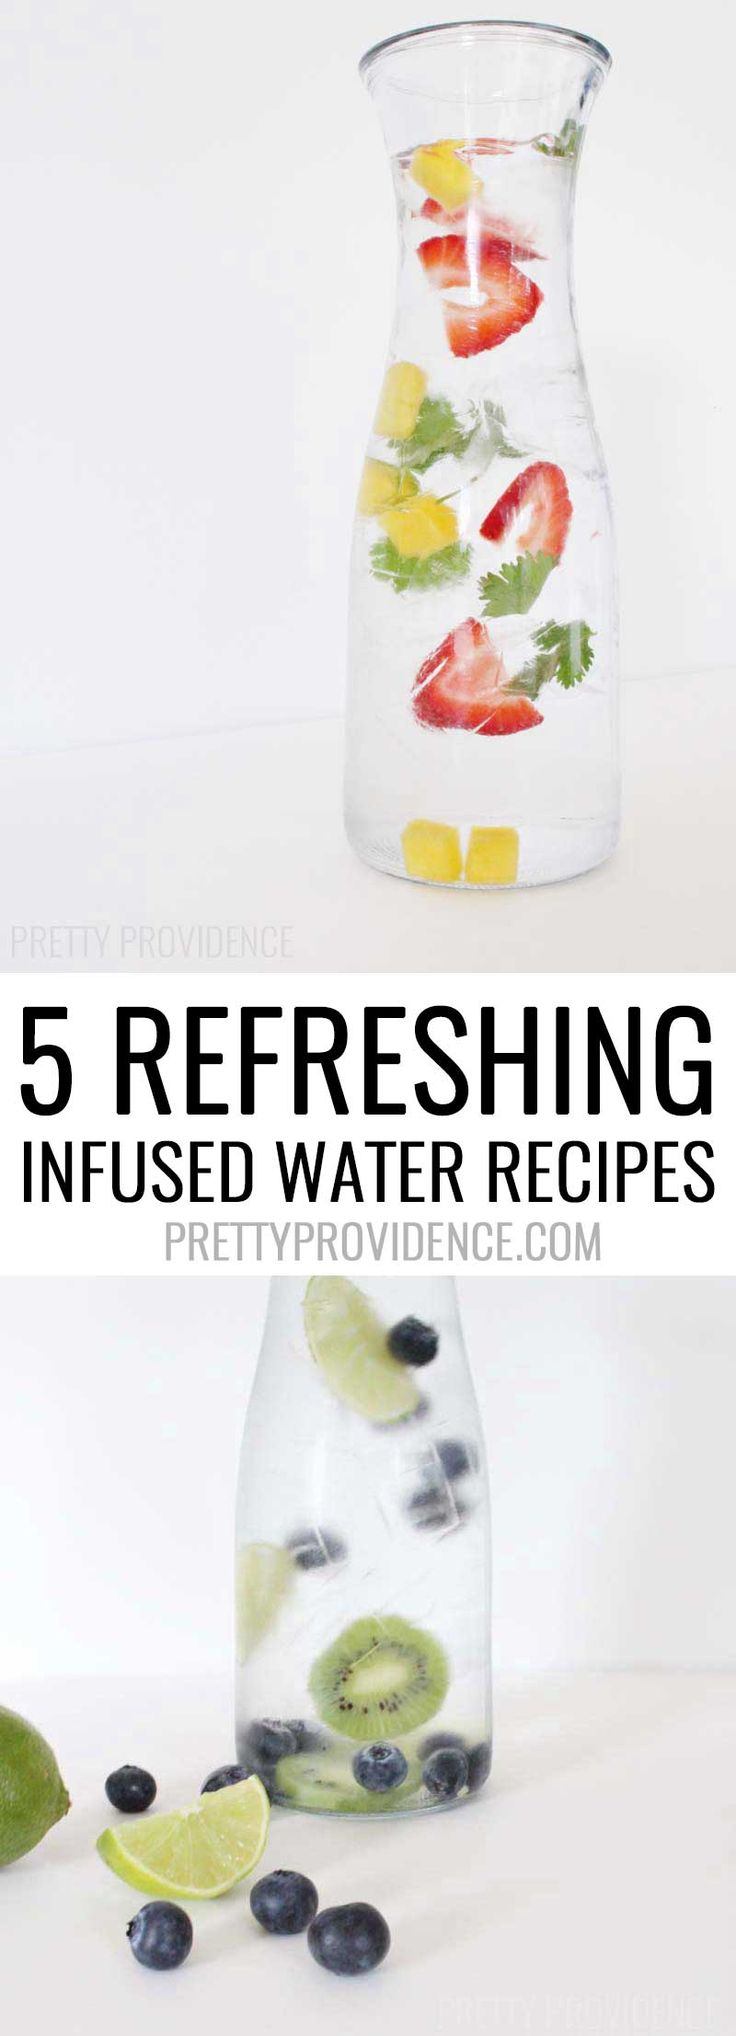 DIY infused water from MichaelsMakers Pretty Providence